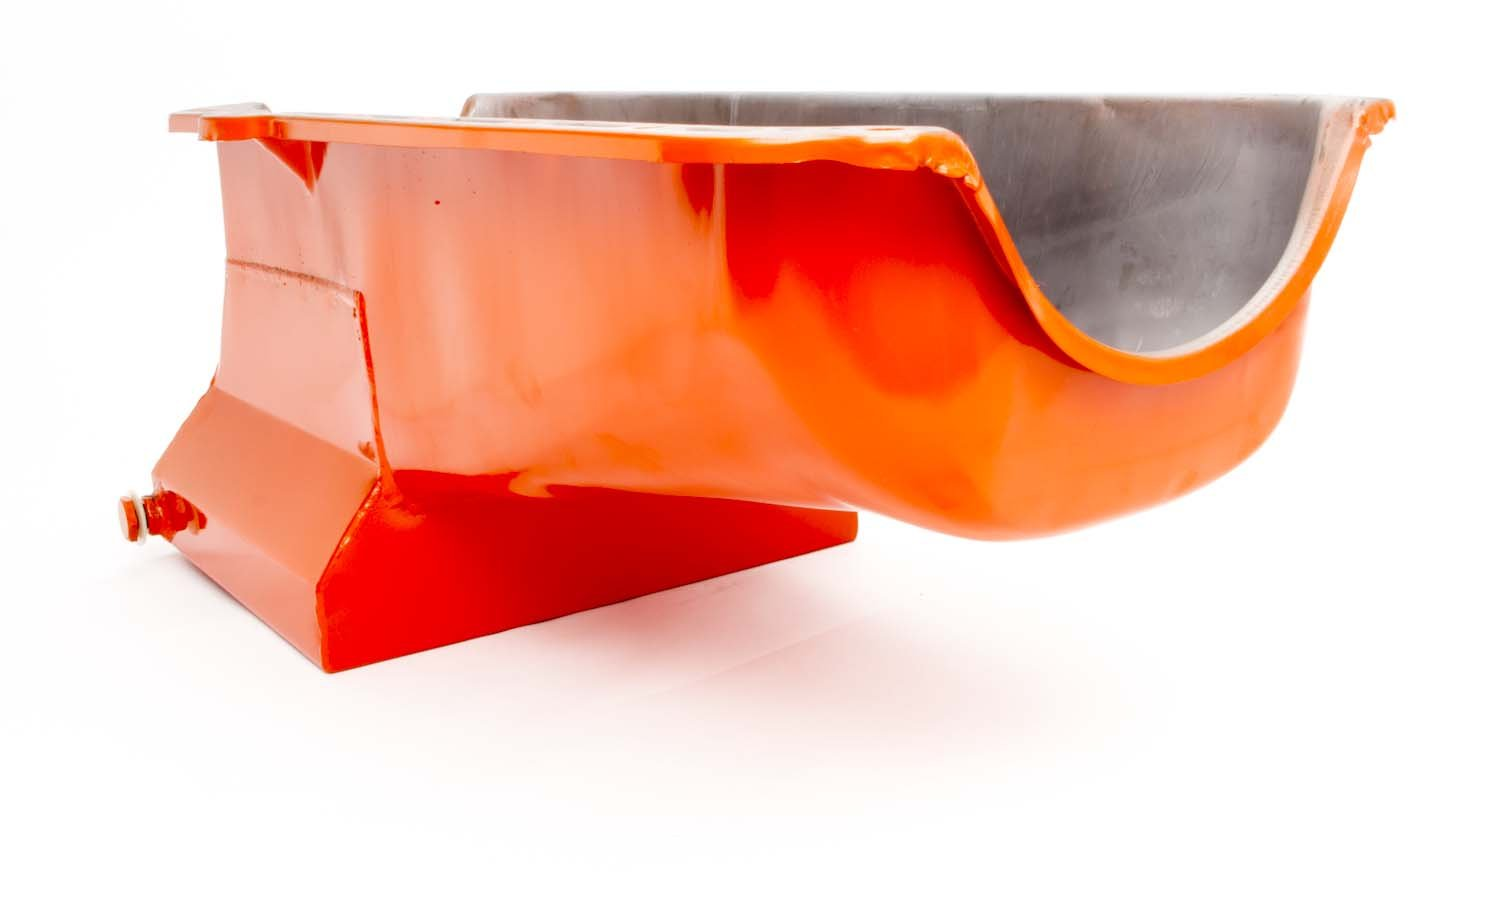 Racing Power Company R9731 Orange Drag Race Oil Pan for Small Block Chevy